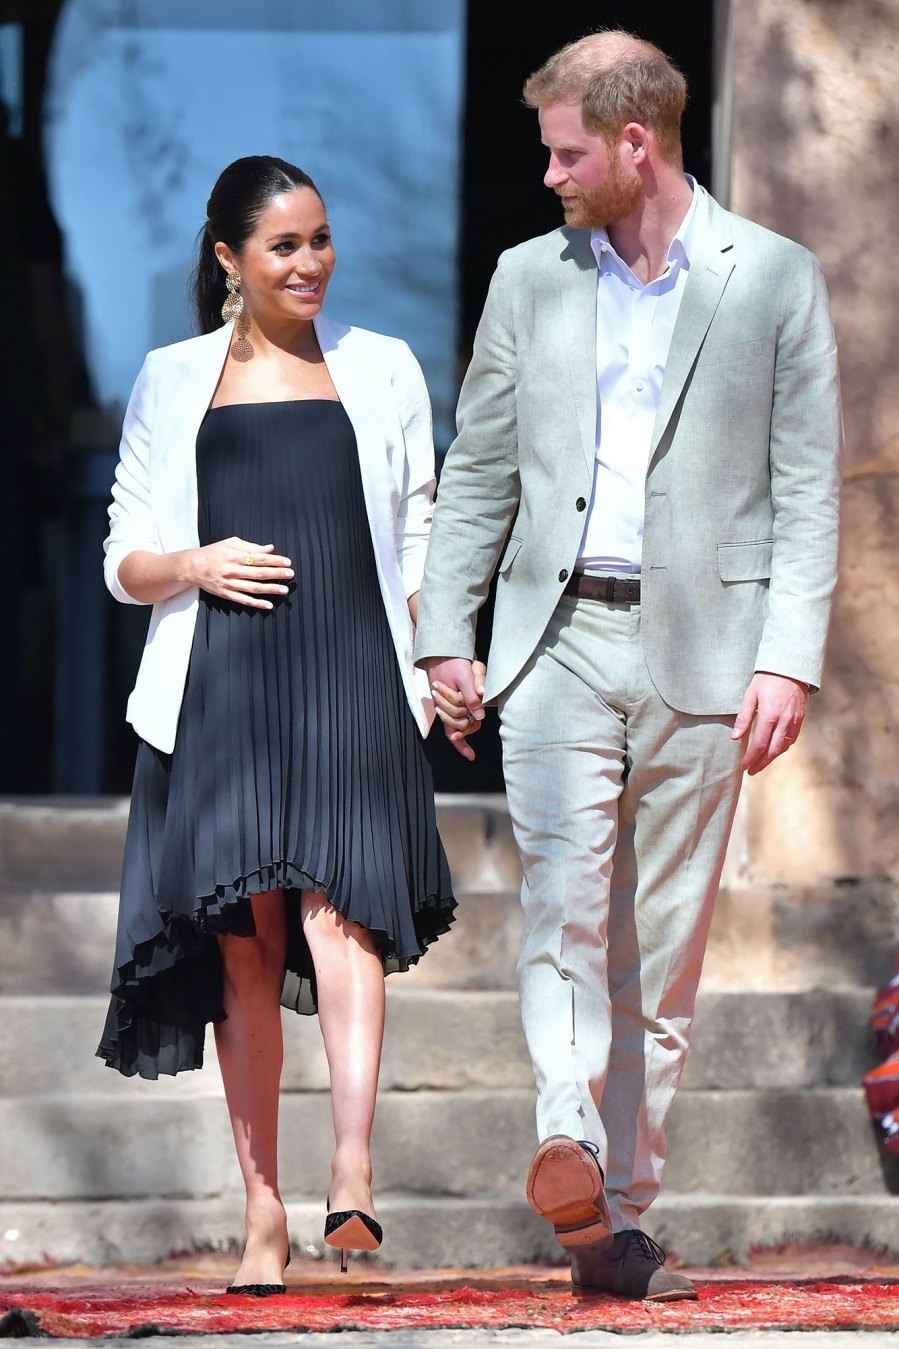 Celebrities React to Prince Harry and Meghan Markle's Baby Daughter Lilibet's Arrival